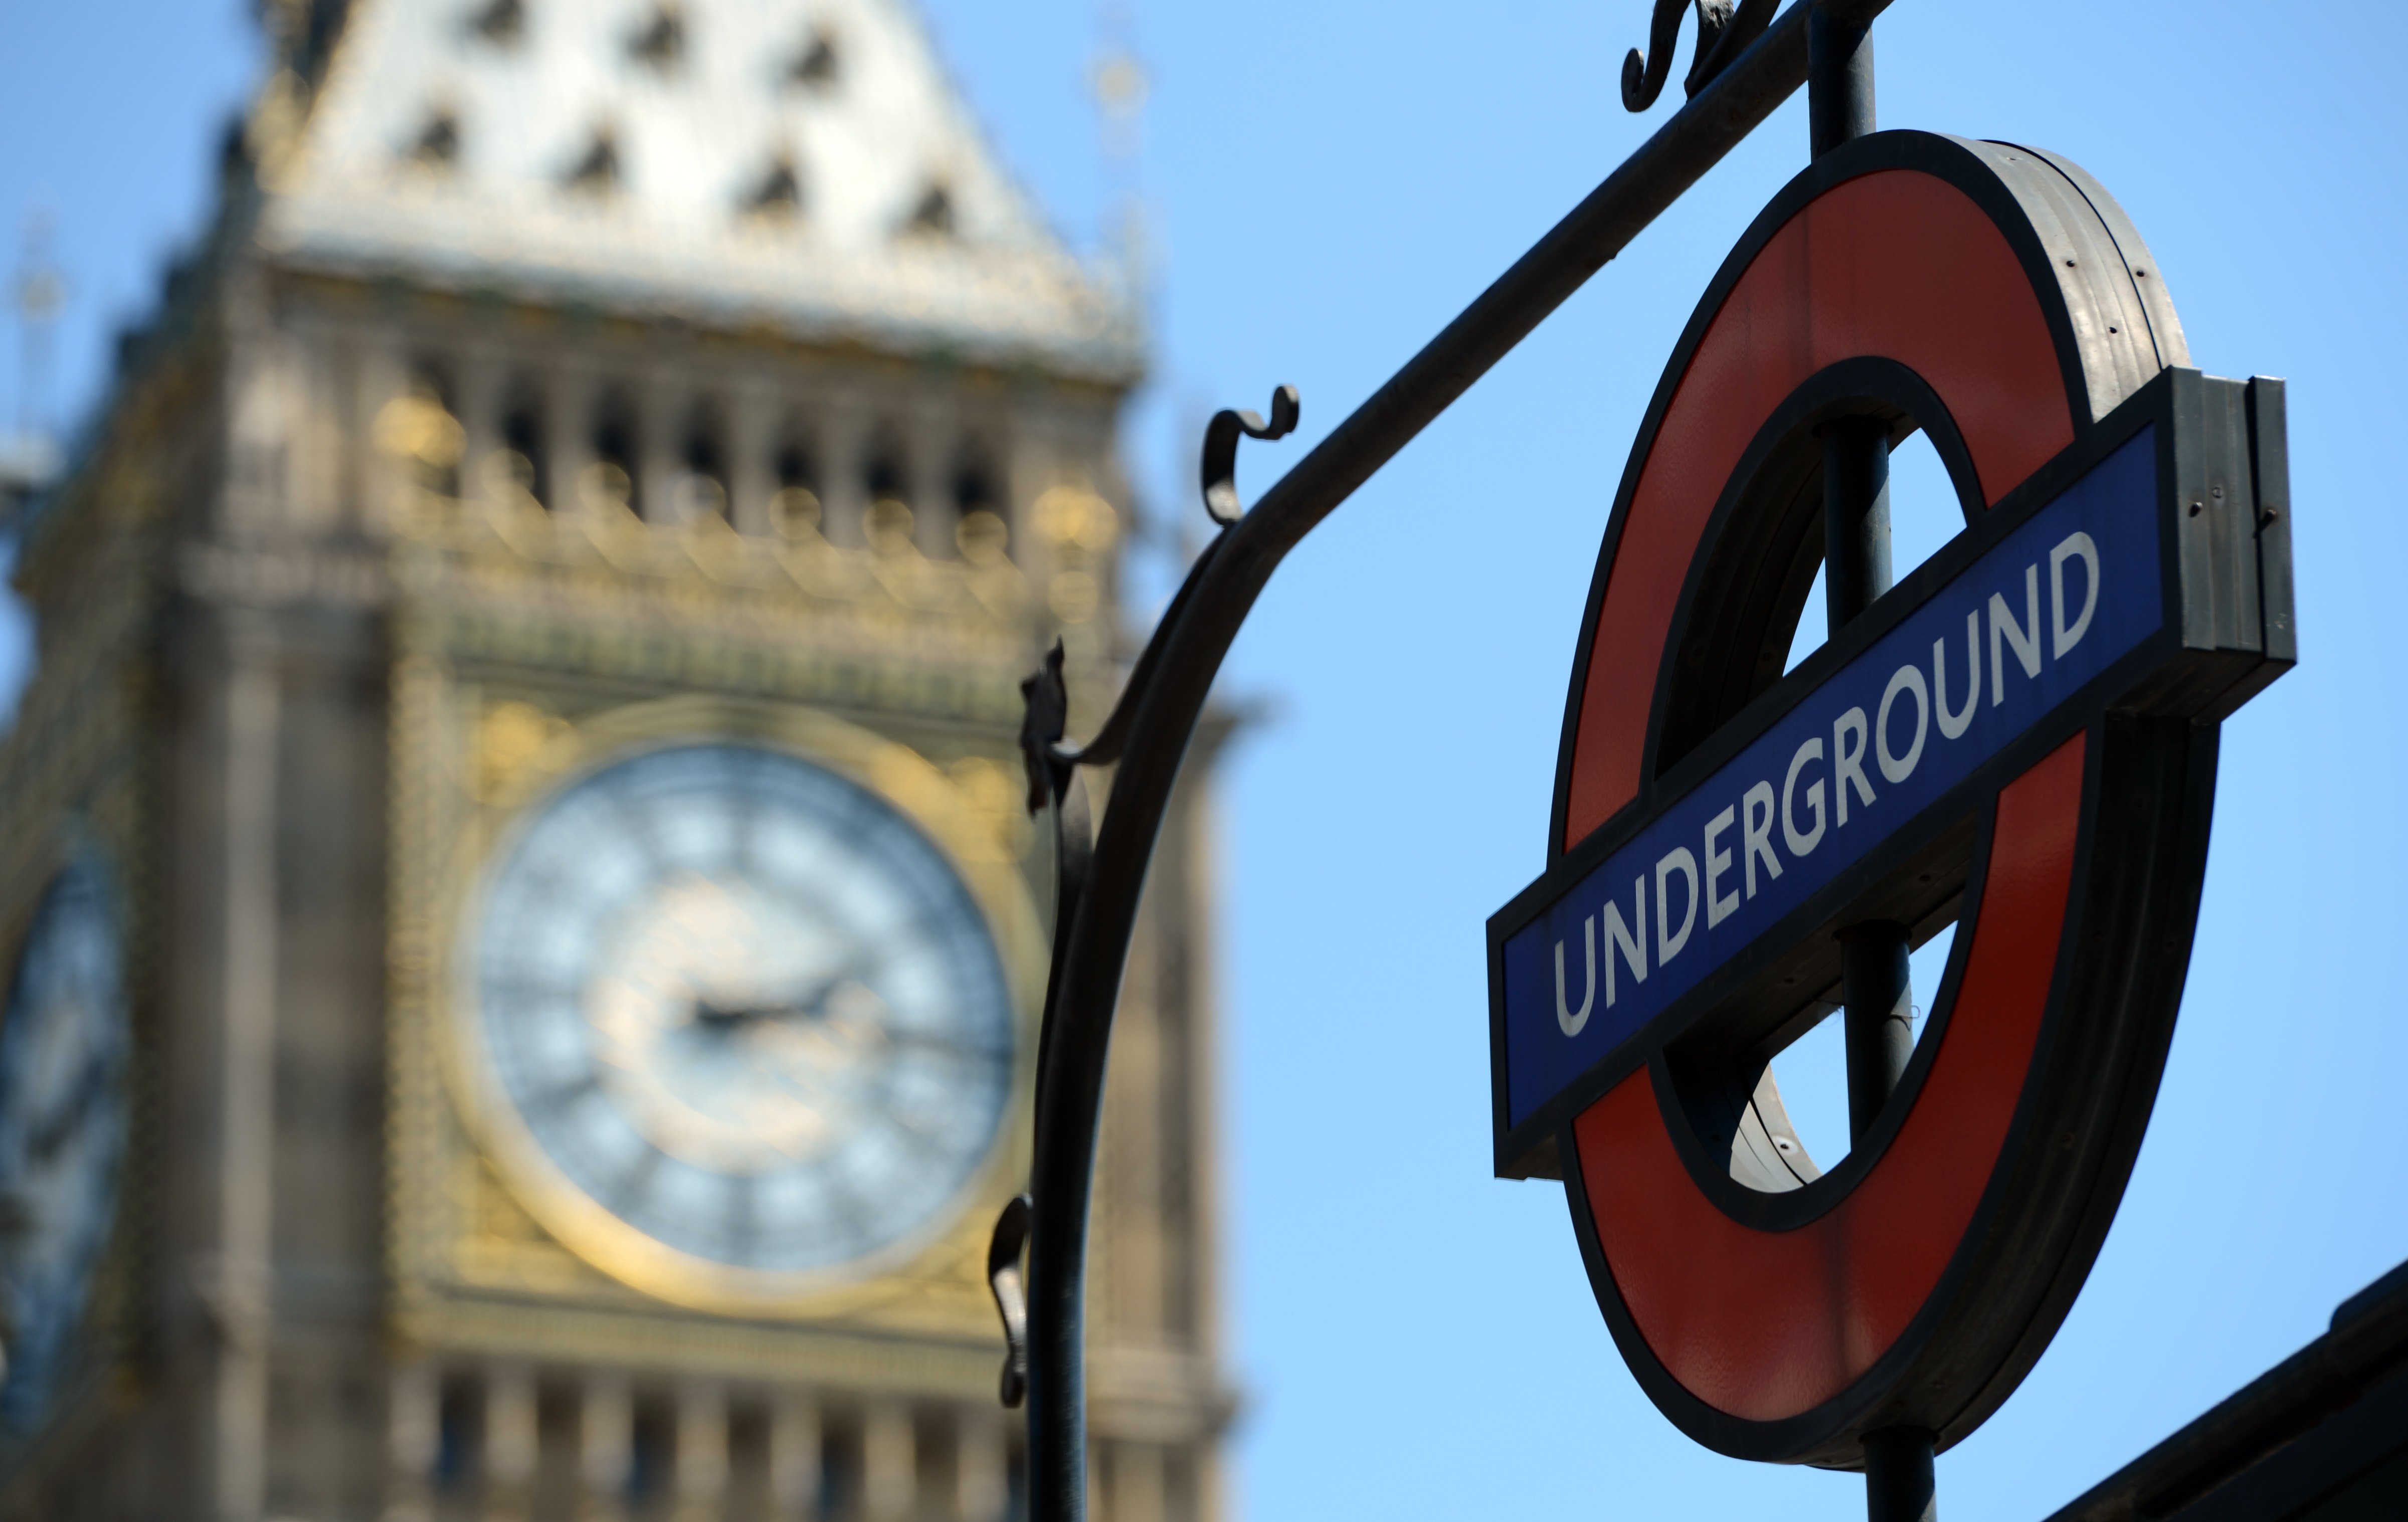 O2 To Offer Its Users Free Wi-Fi On The London Underground